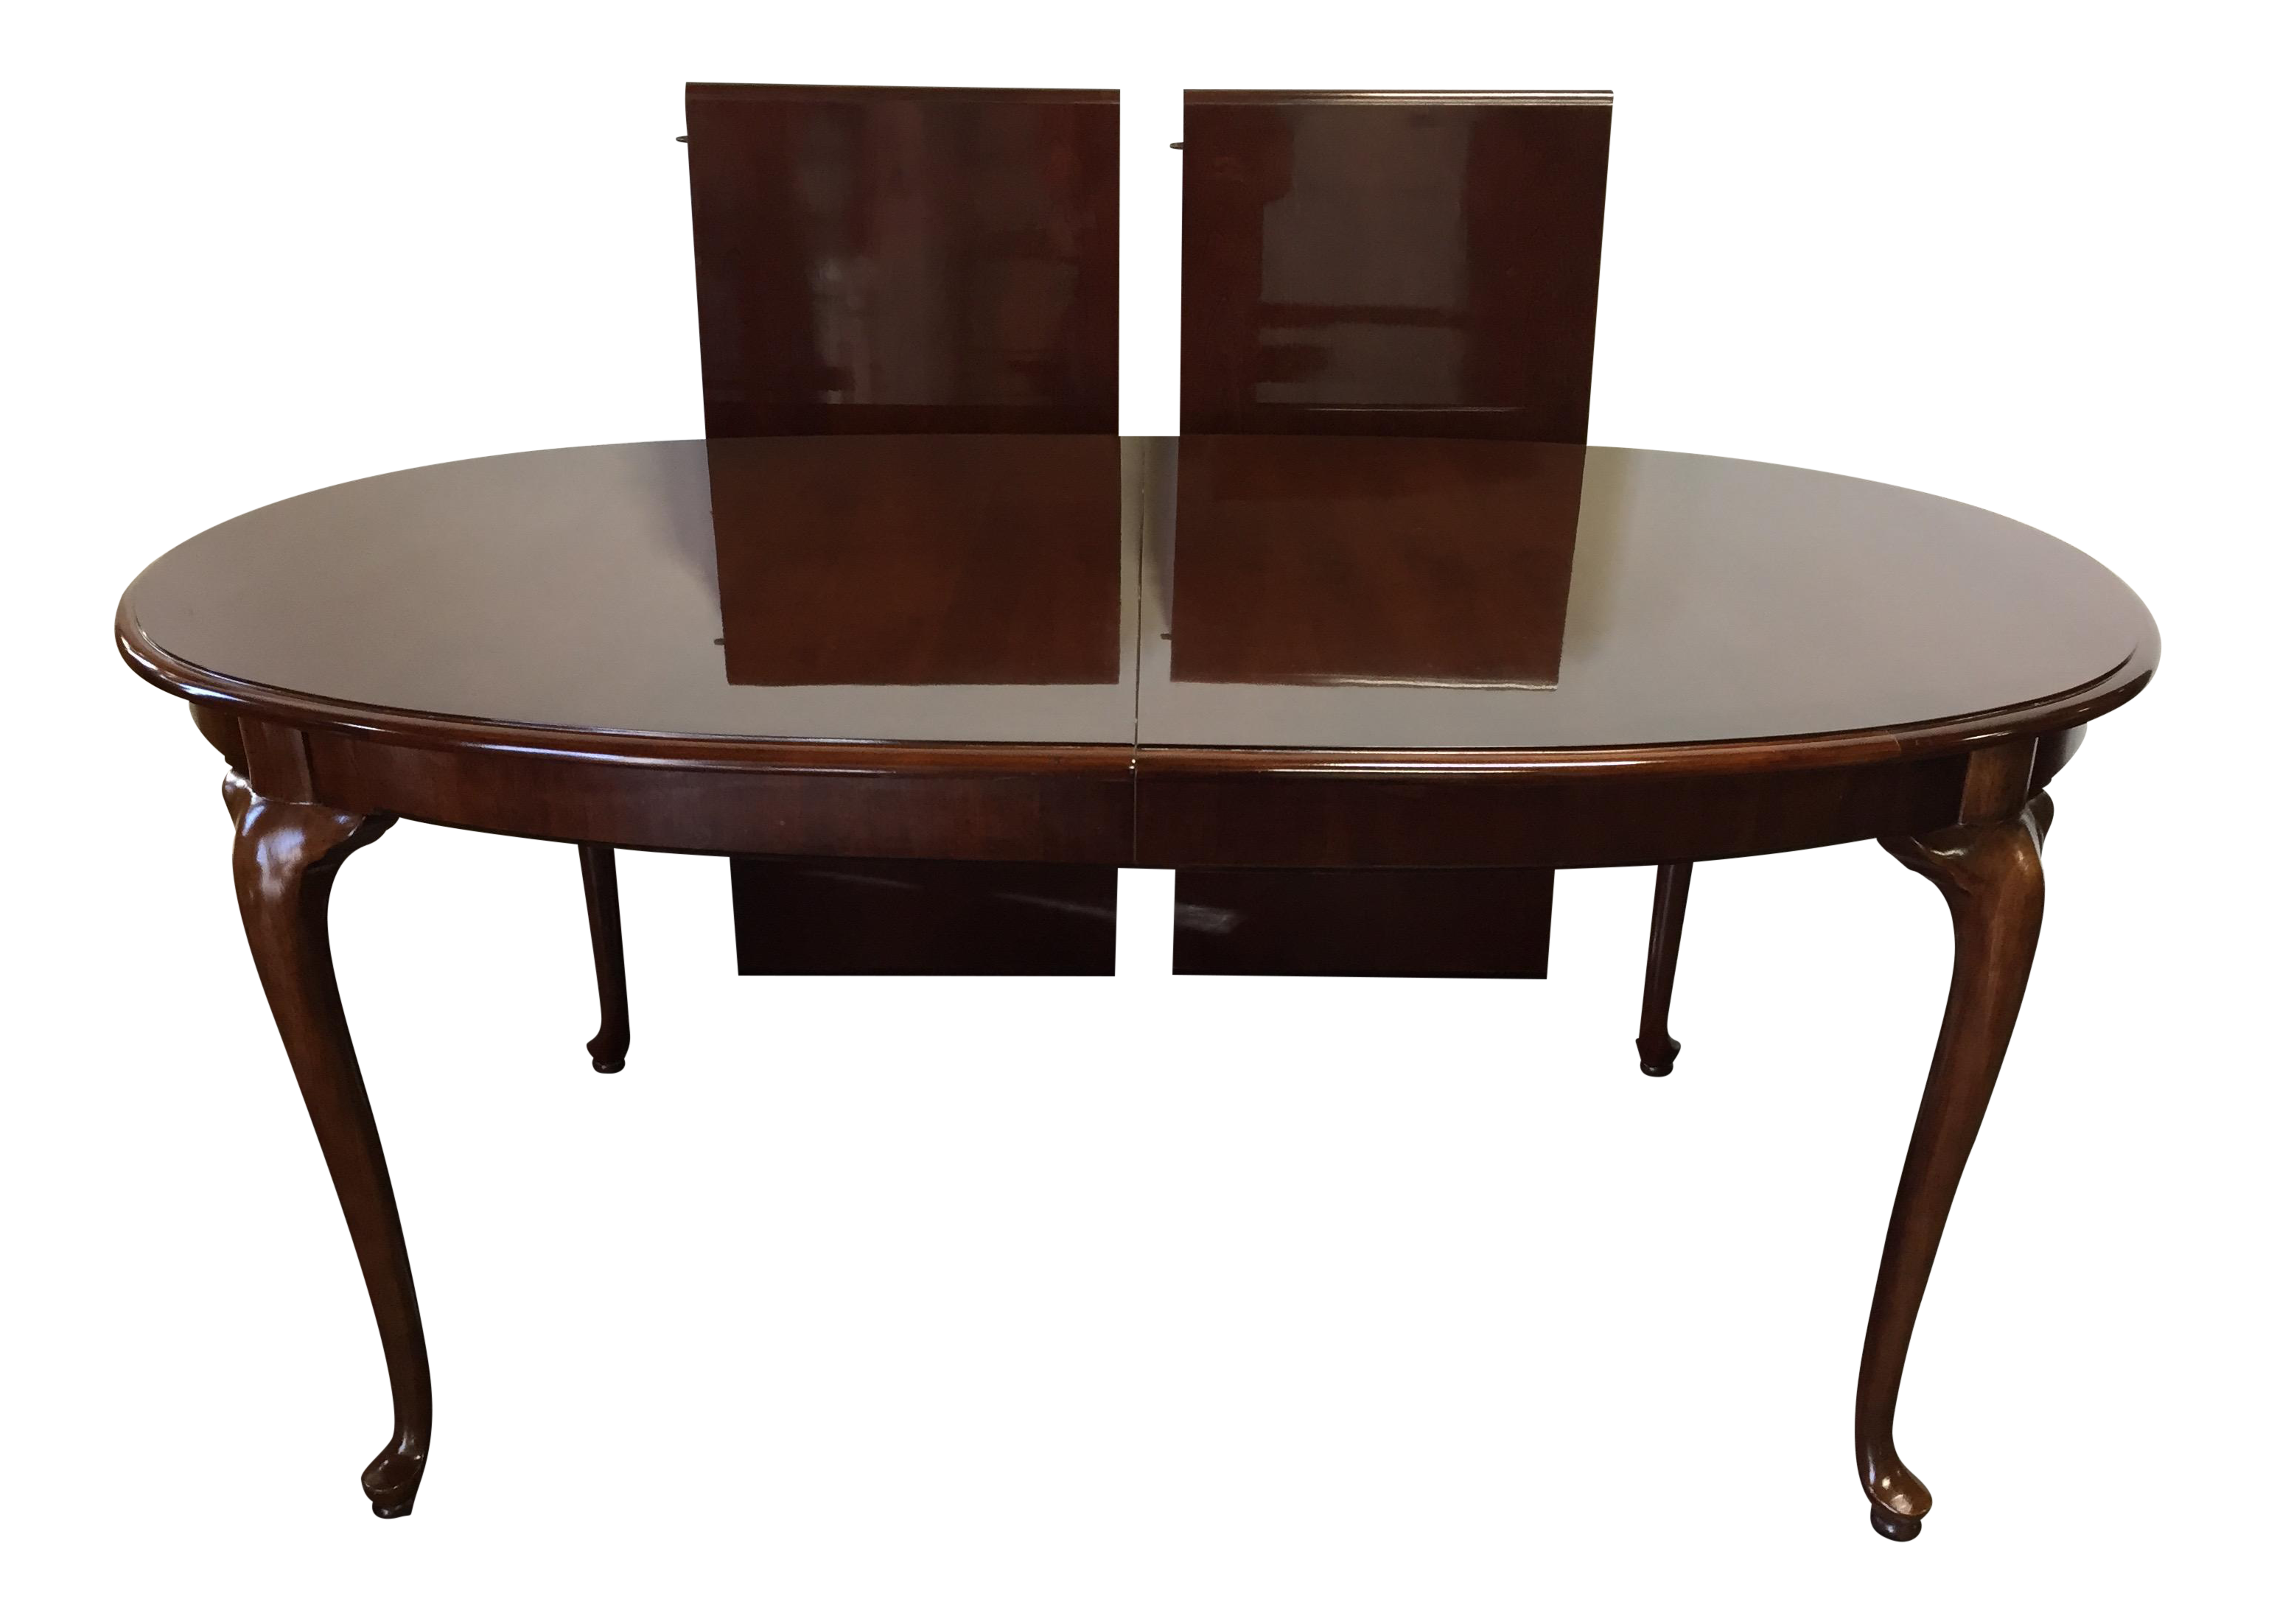 thomasville cherry queen anne dining table chairish. Black Bedroom Furniture Sets. Home Design Ideas